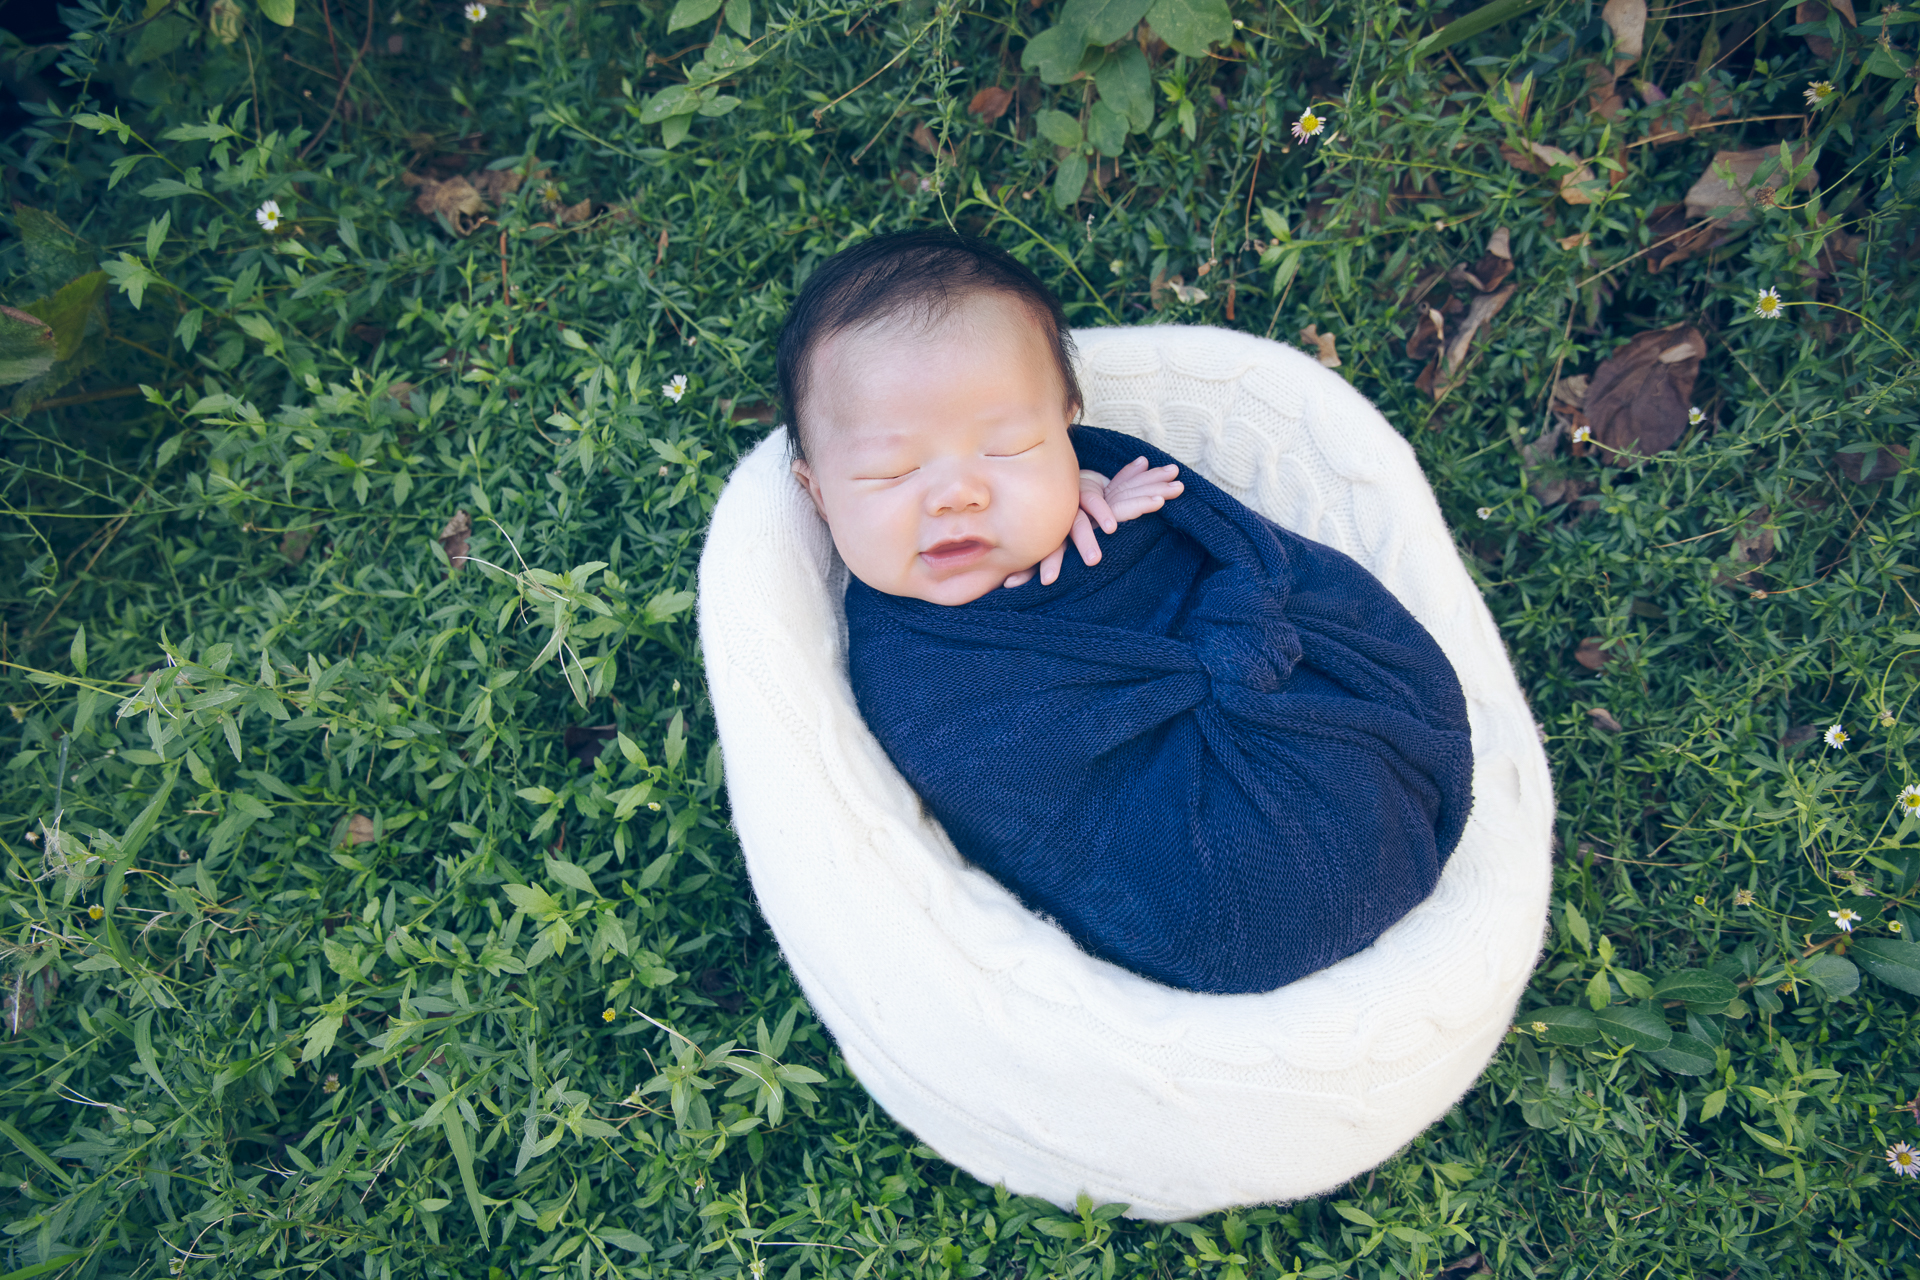 newborn wearing blue wrap rests on round shaped white prop outdoors.